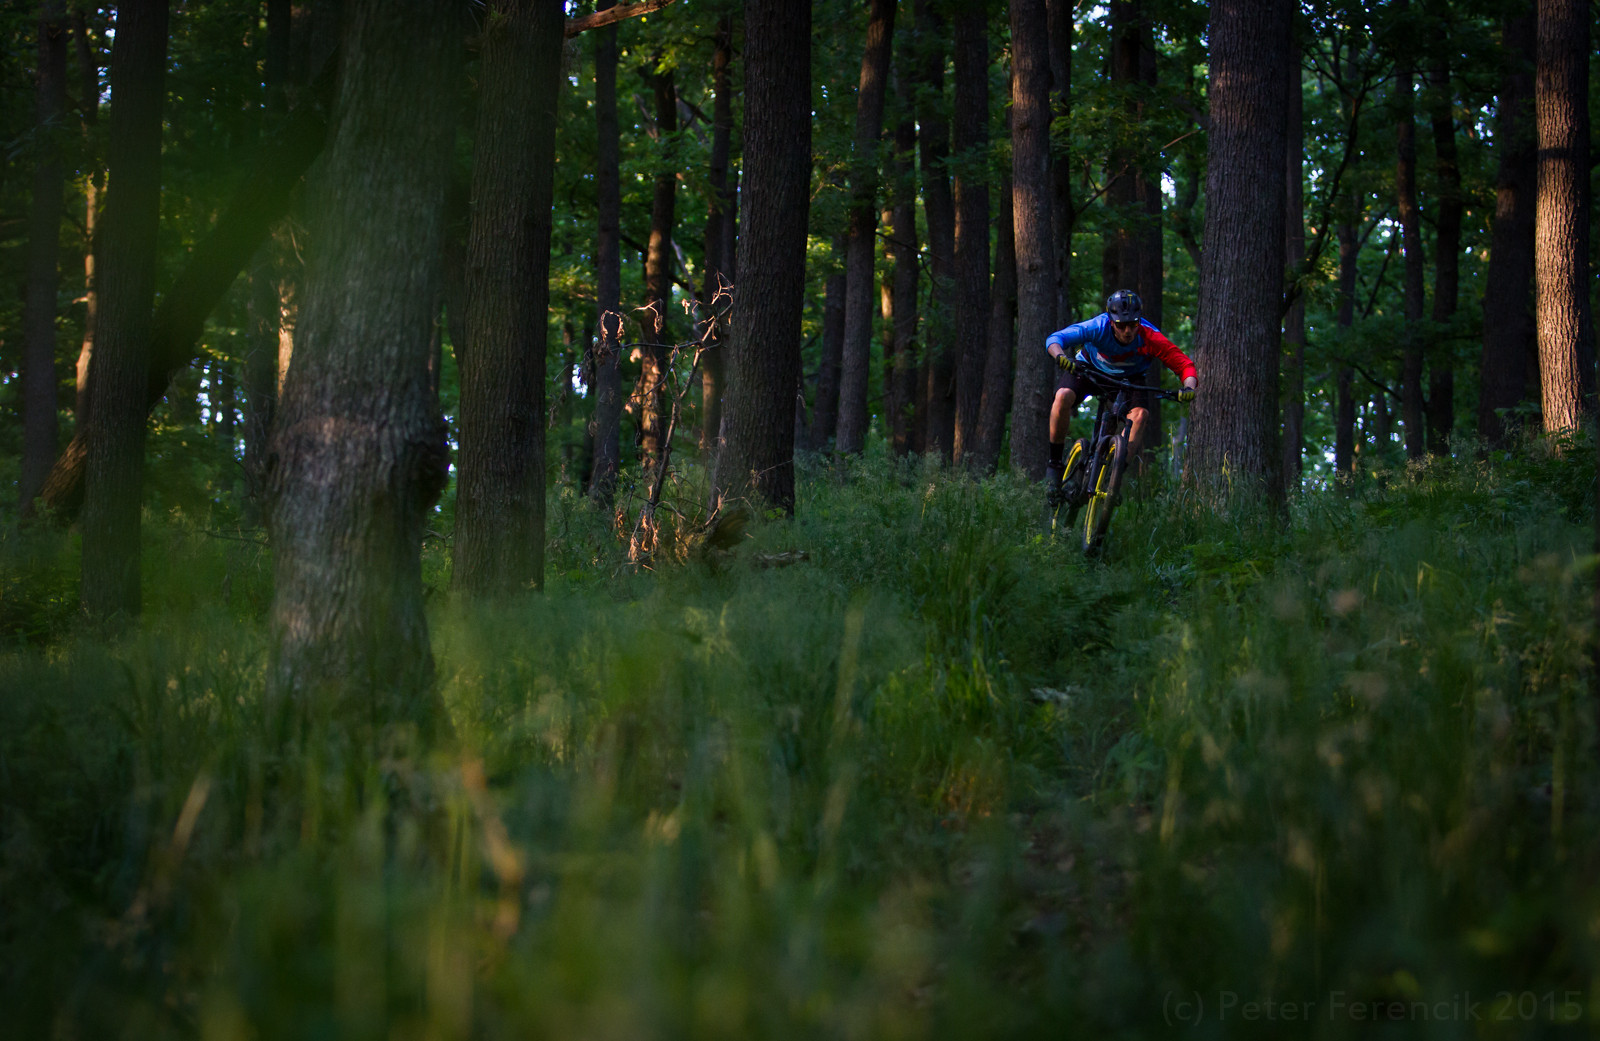 in the woods - PeterFPhotography - Mountain Biking Pictures - Vital MTB